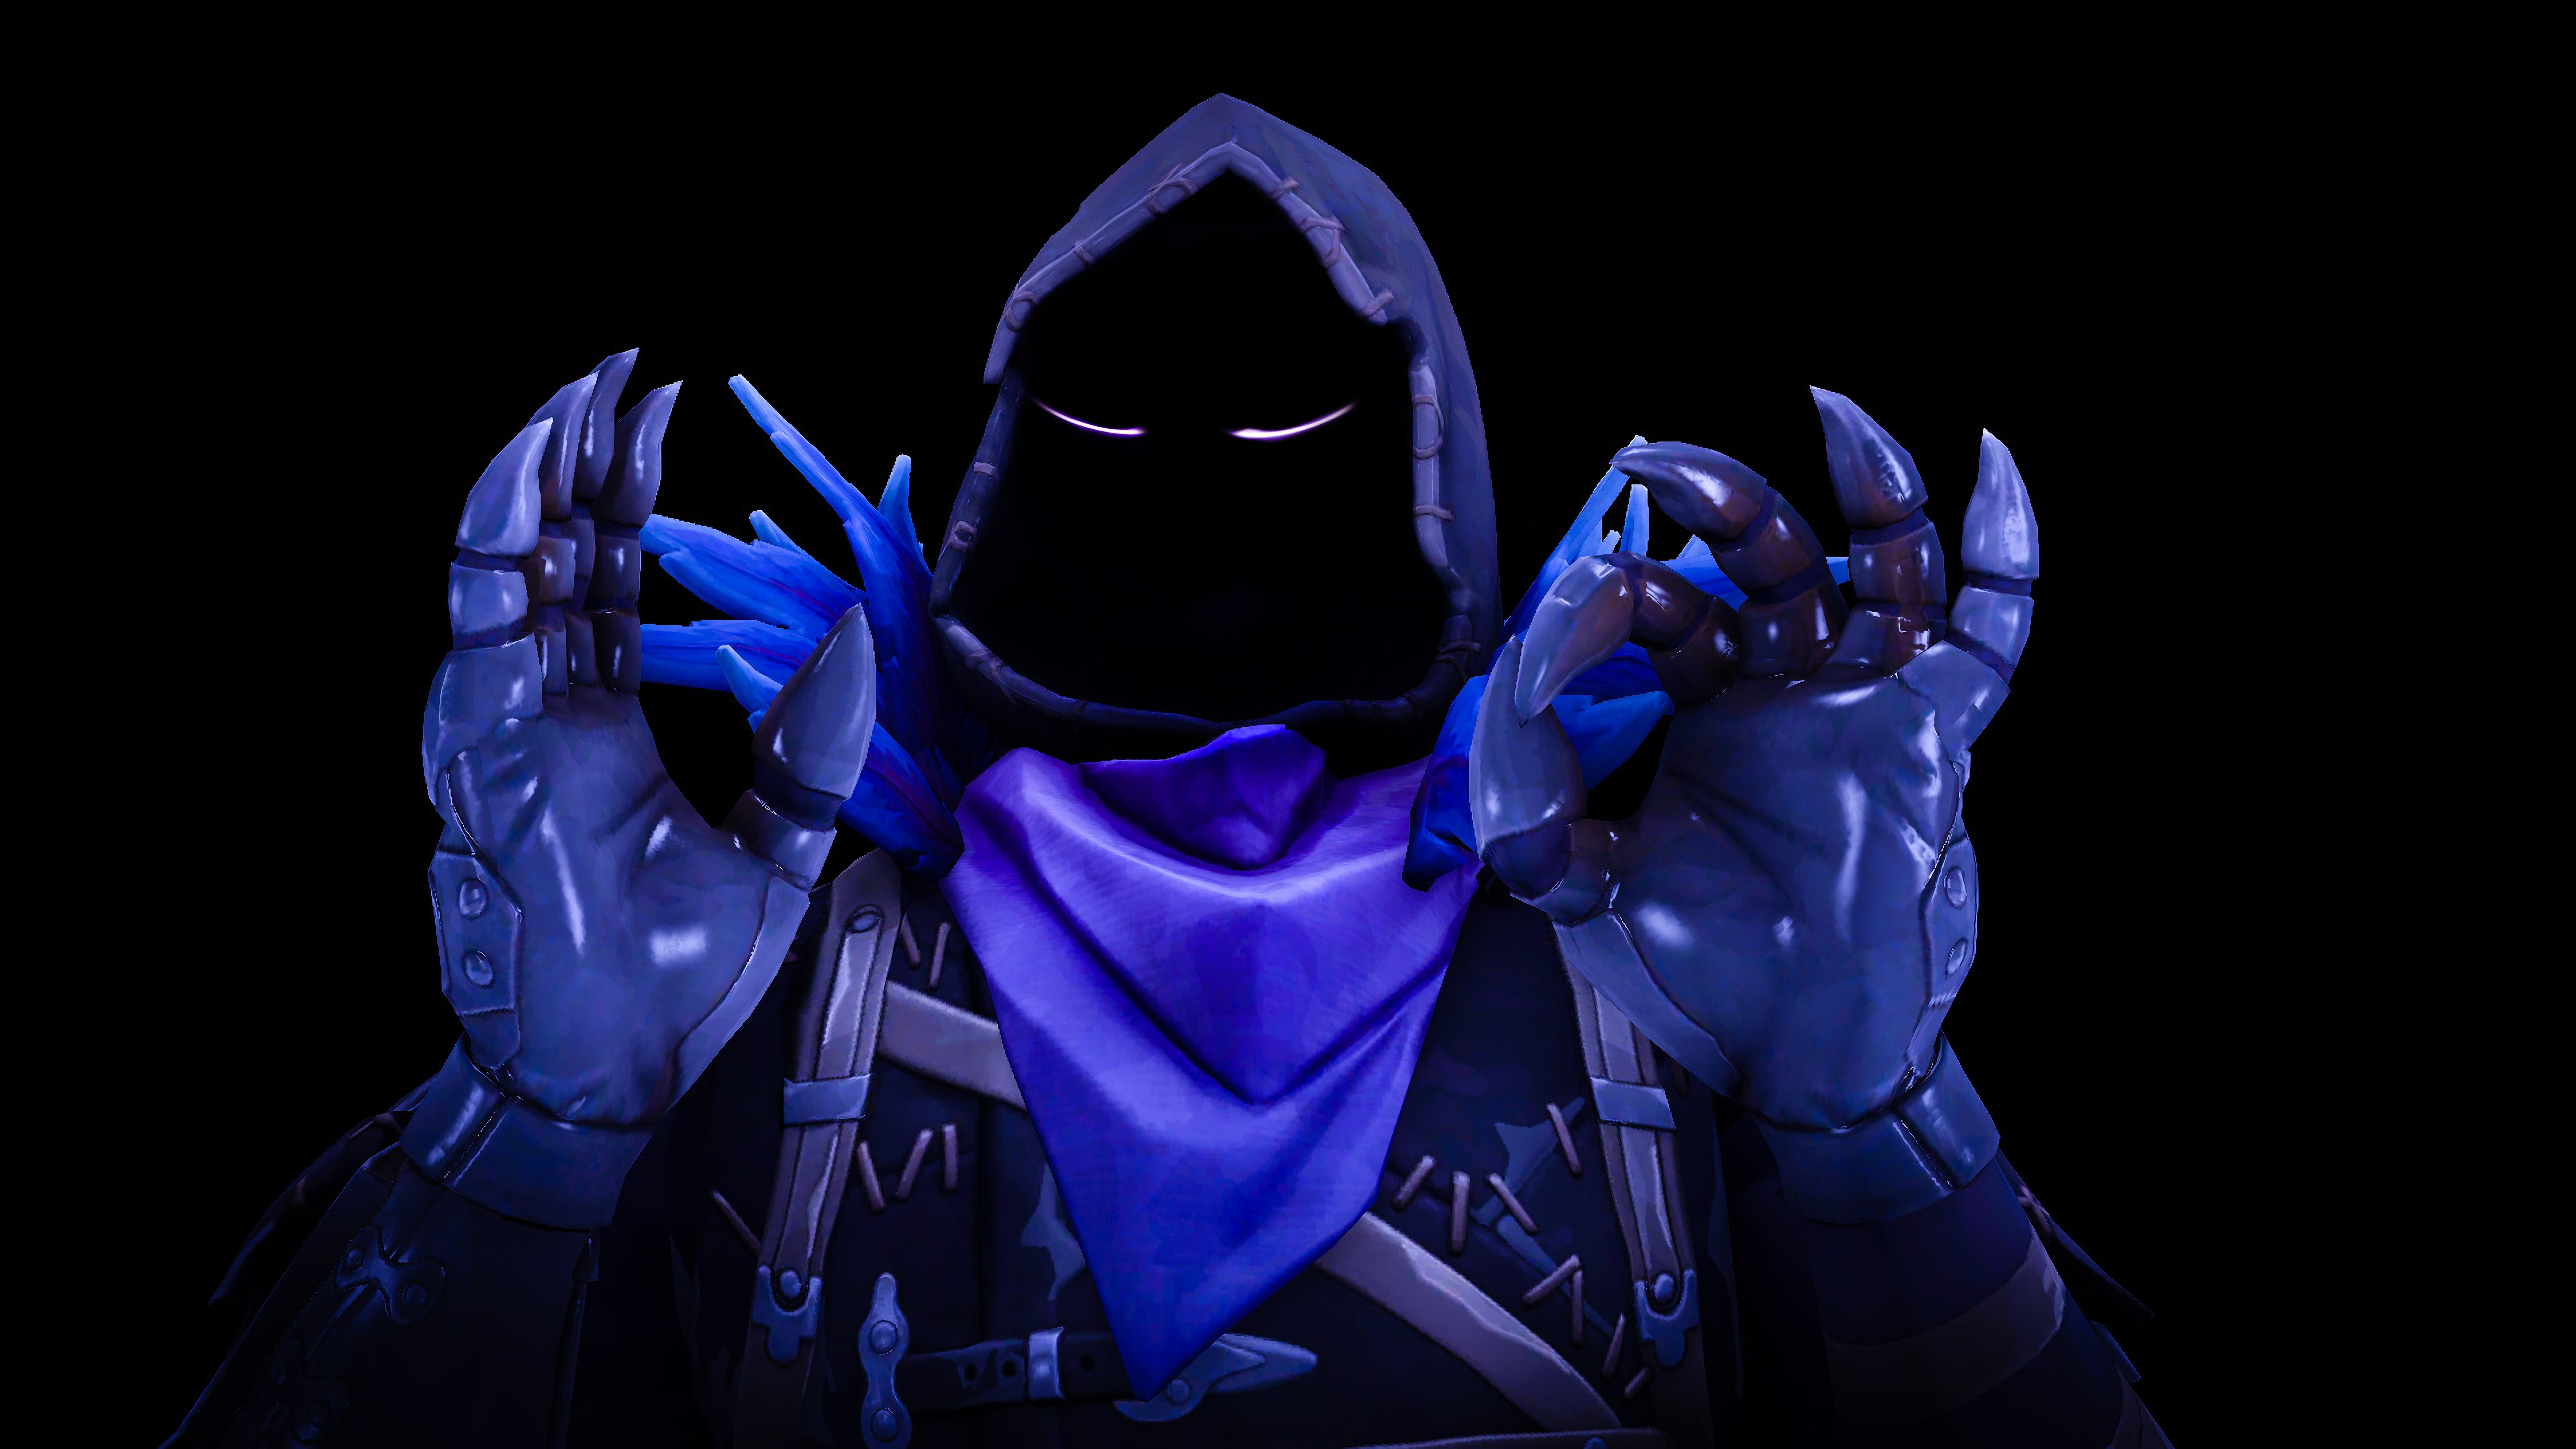 Fortnite Wallpaper 7K Battle Royale Raven 4062 Wallpapers and 7680x4320